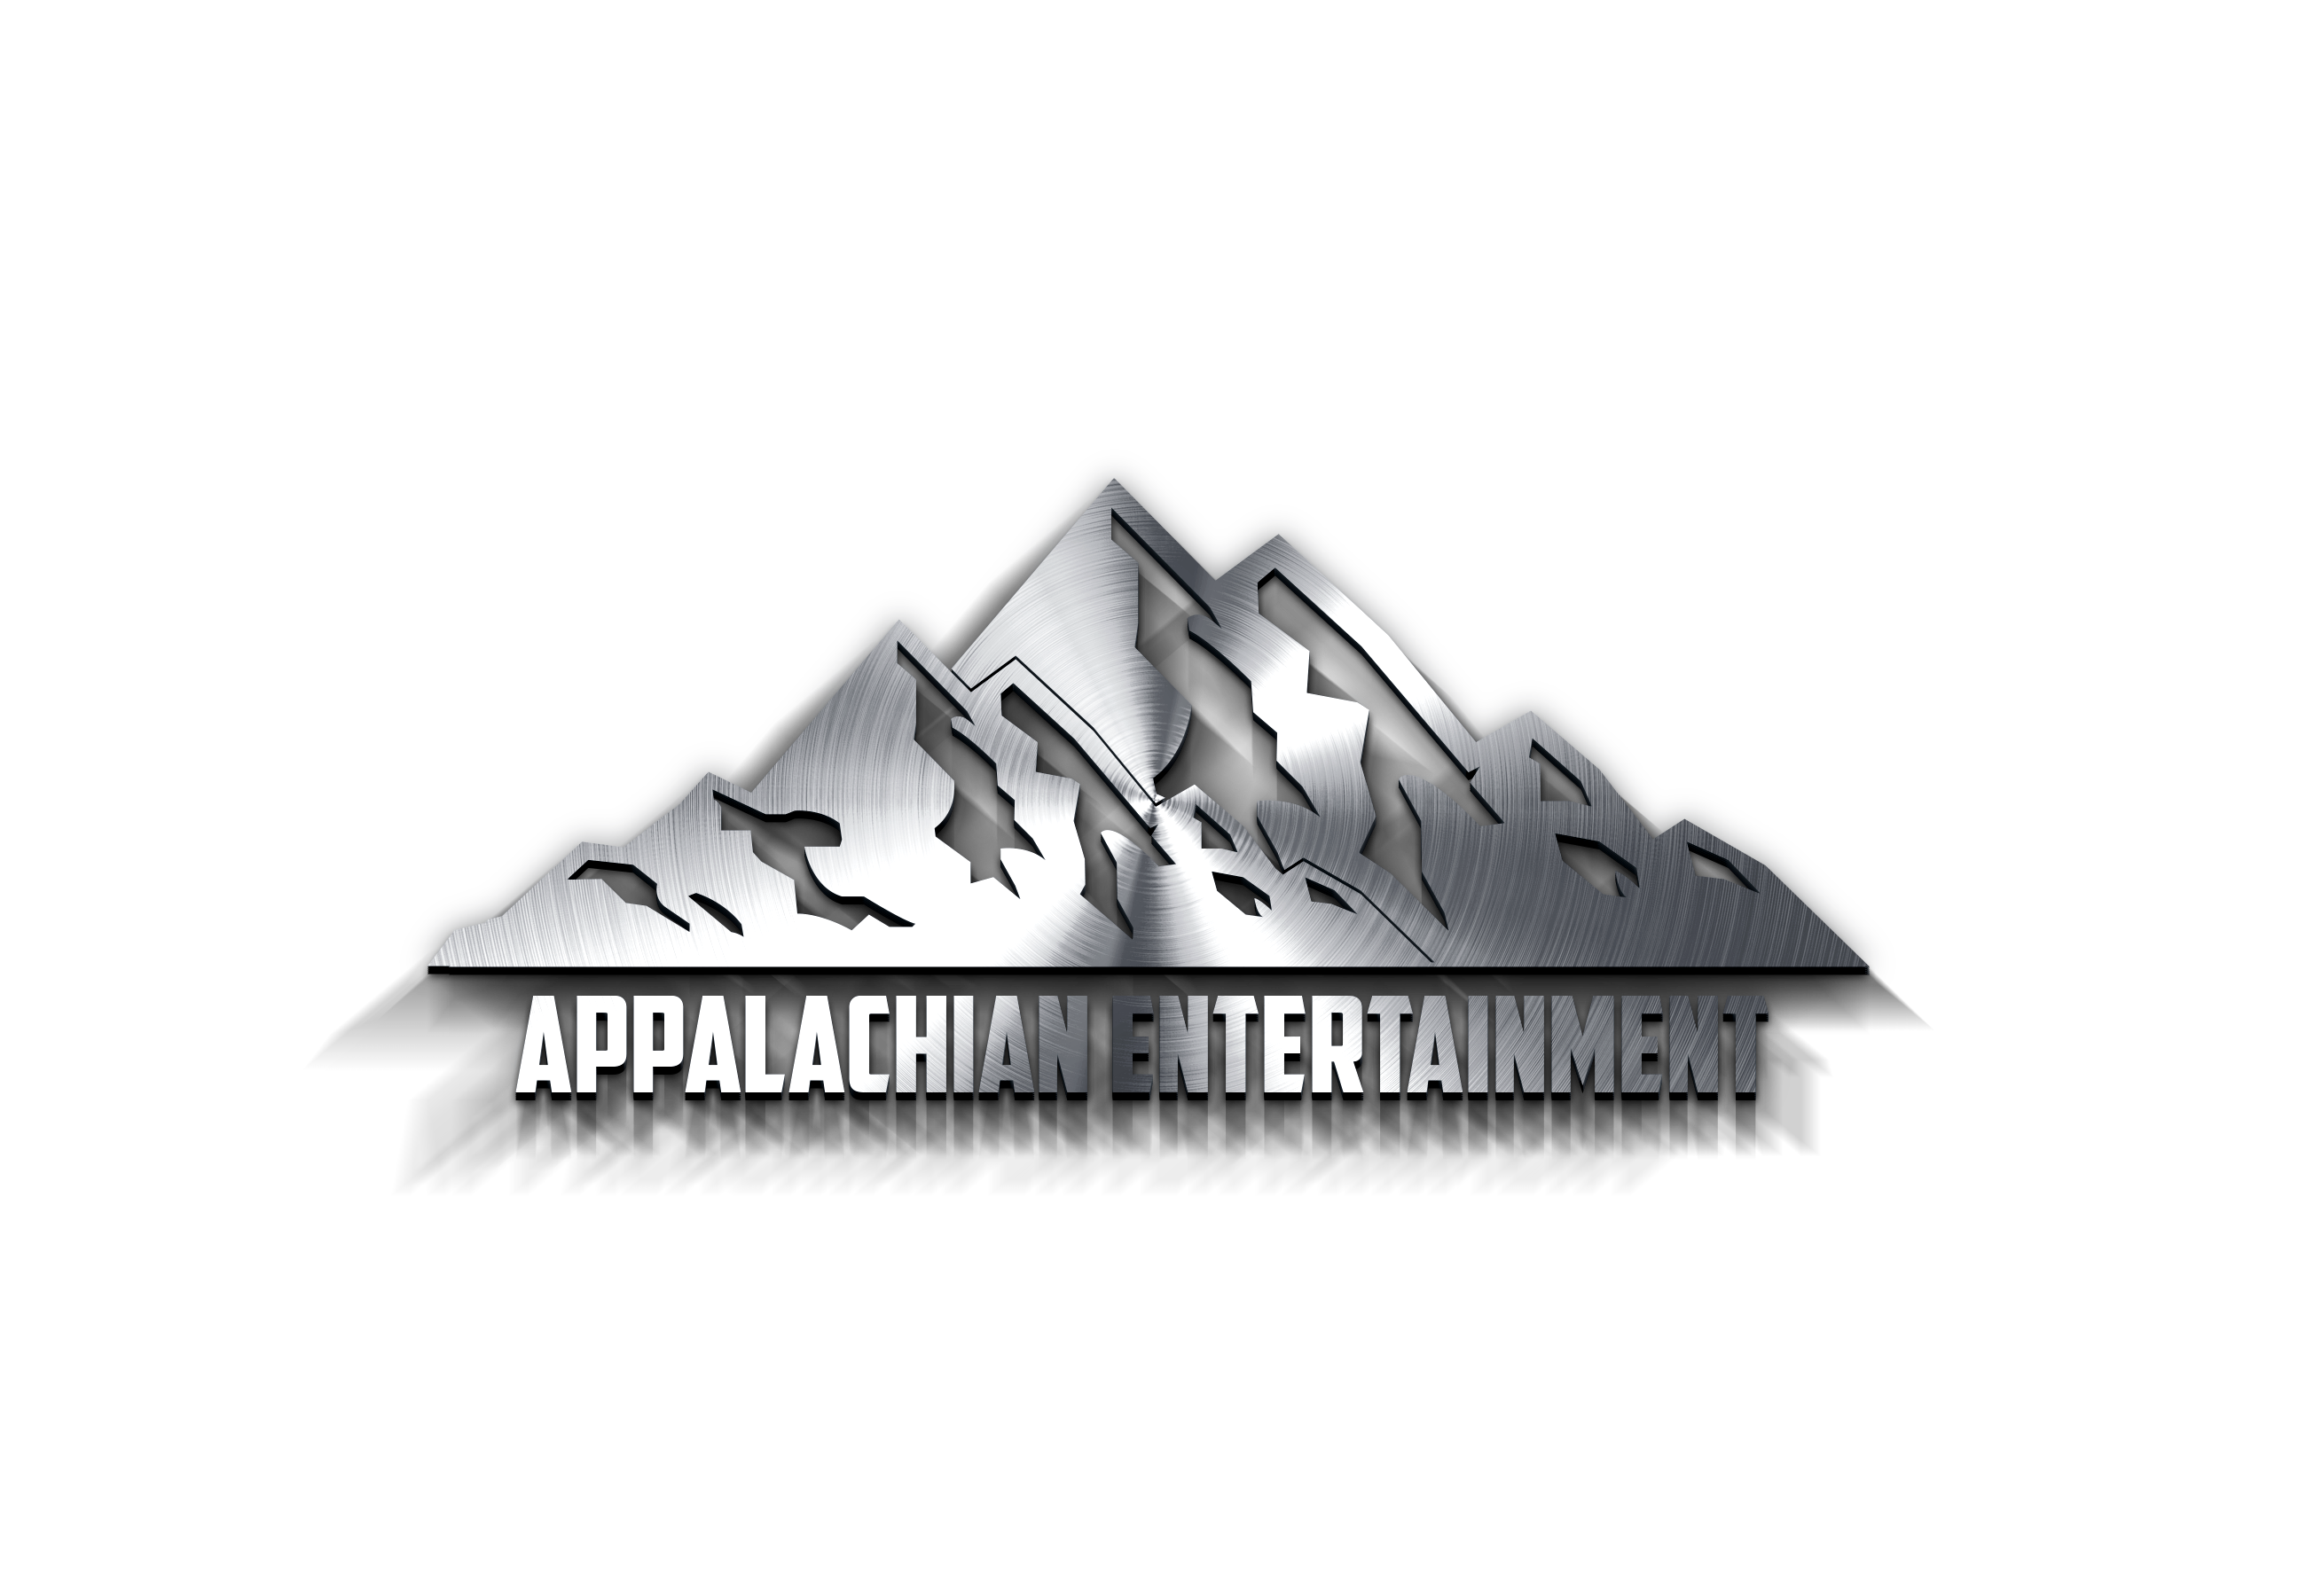 Appalachian Entertainment     484-541-5902